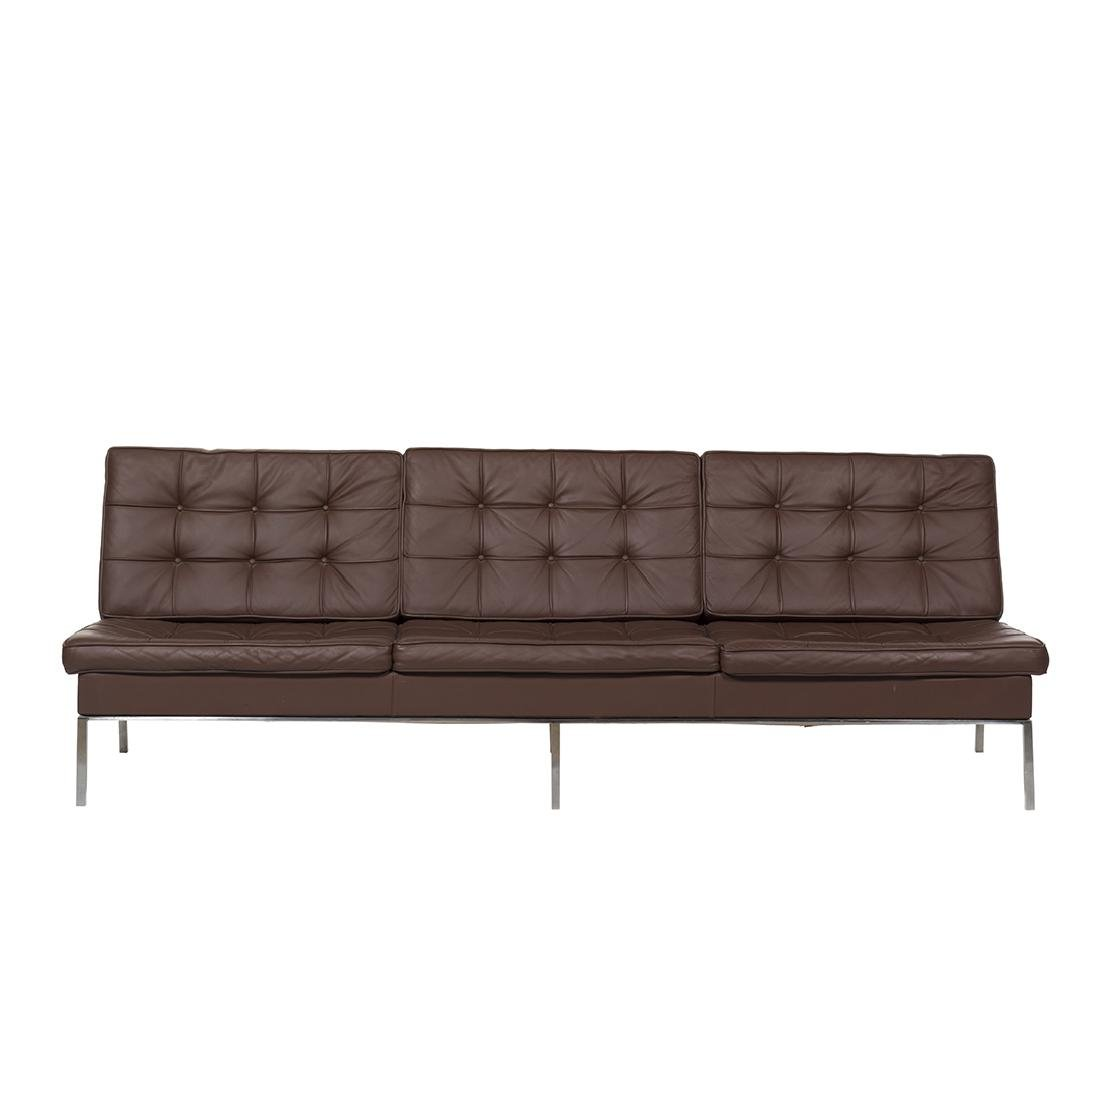 Florence Knoll Leather Sofa